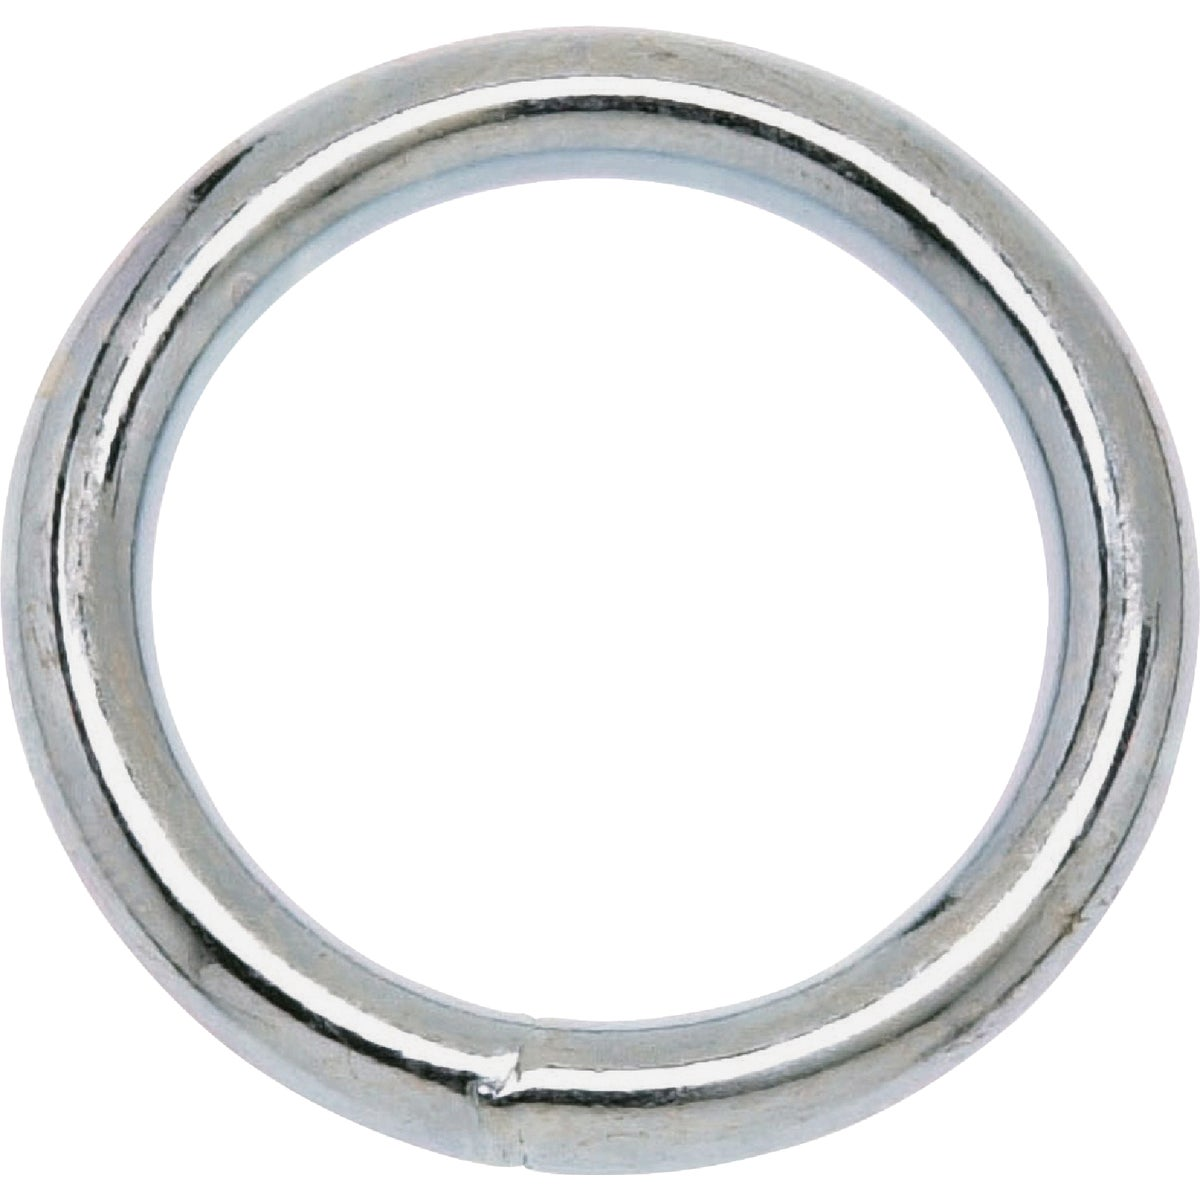 "1-1/8"" #7 BNZ RND RING - T7662114 by Cooper Campbell Apex"